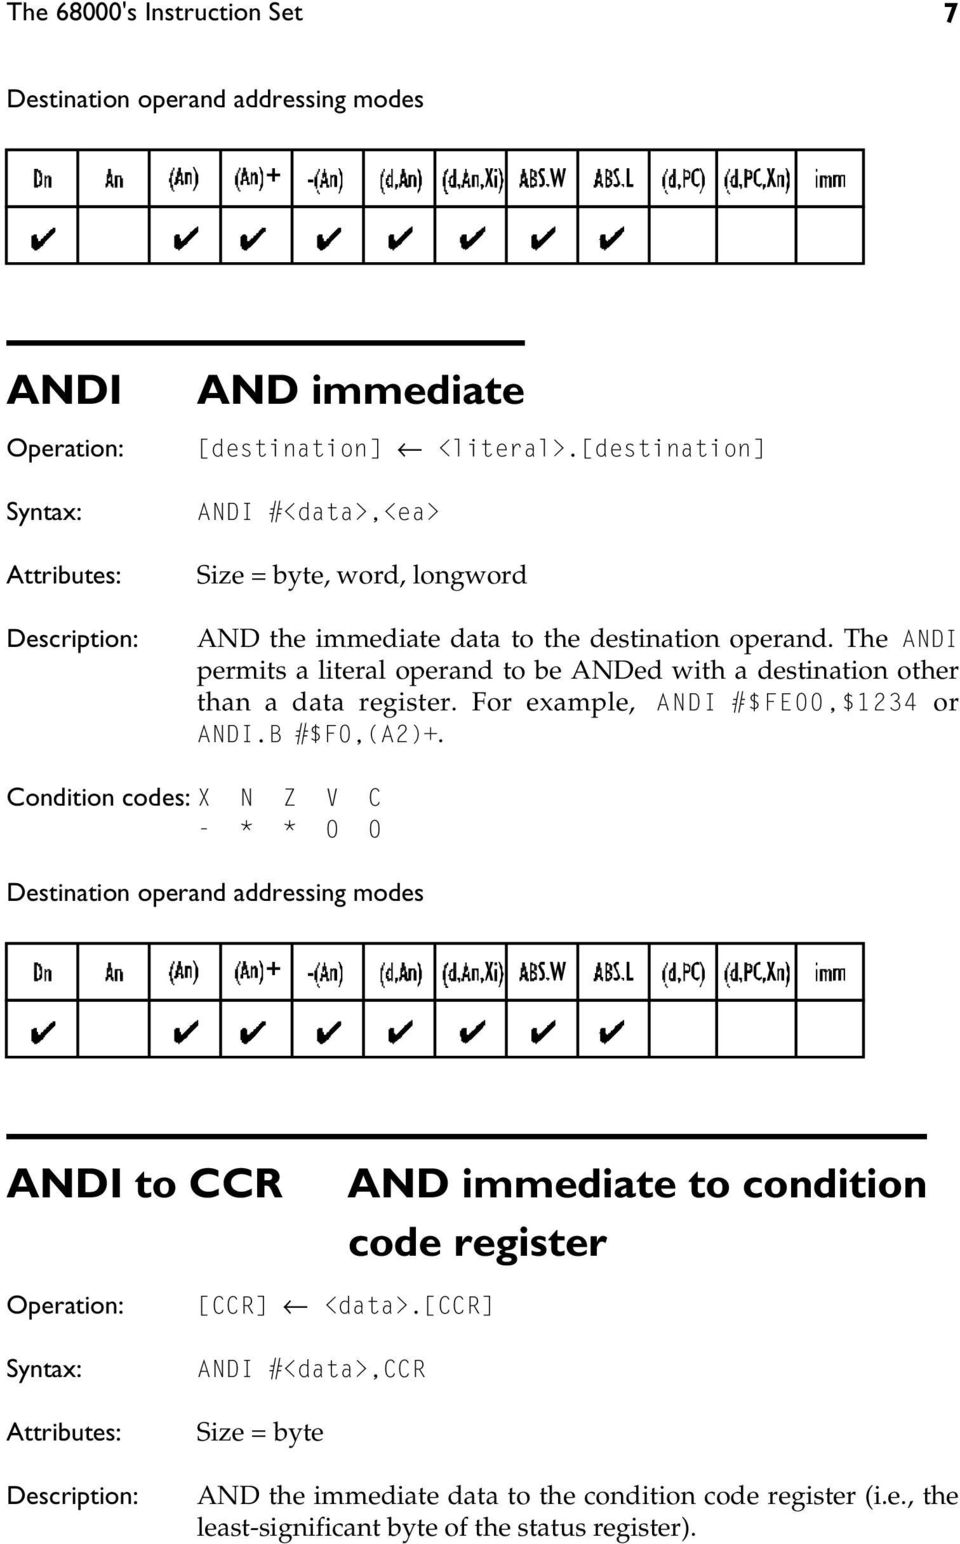 The ANDI permits a literal operand to be ANDed with a destination other than a data register. For example, ANDI #$FE00,$1234 or ANDI.B #$F0,(A2)+.